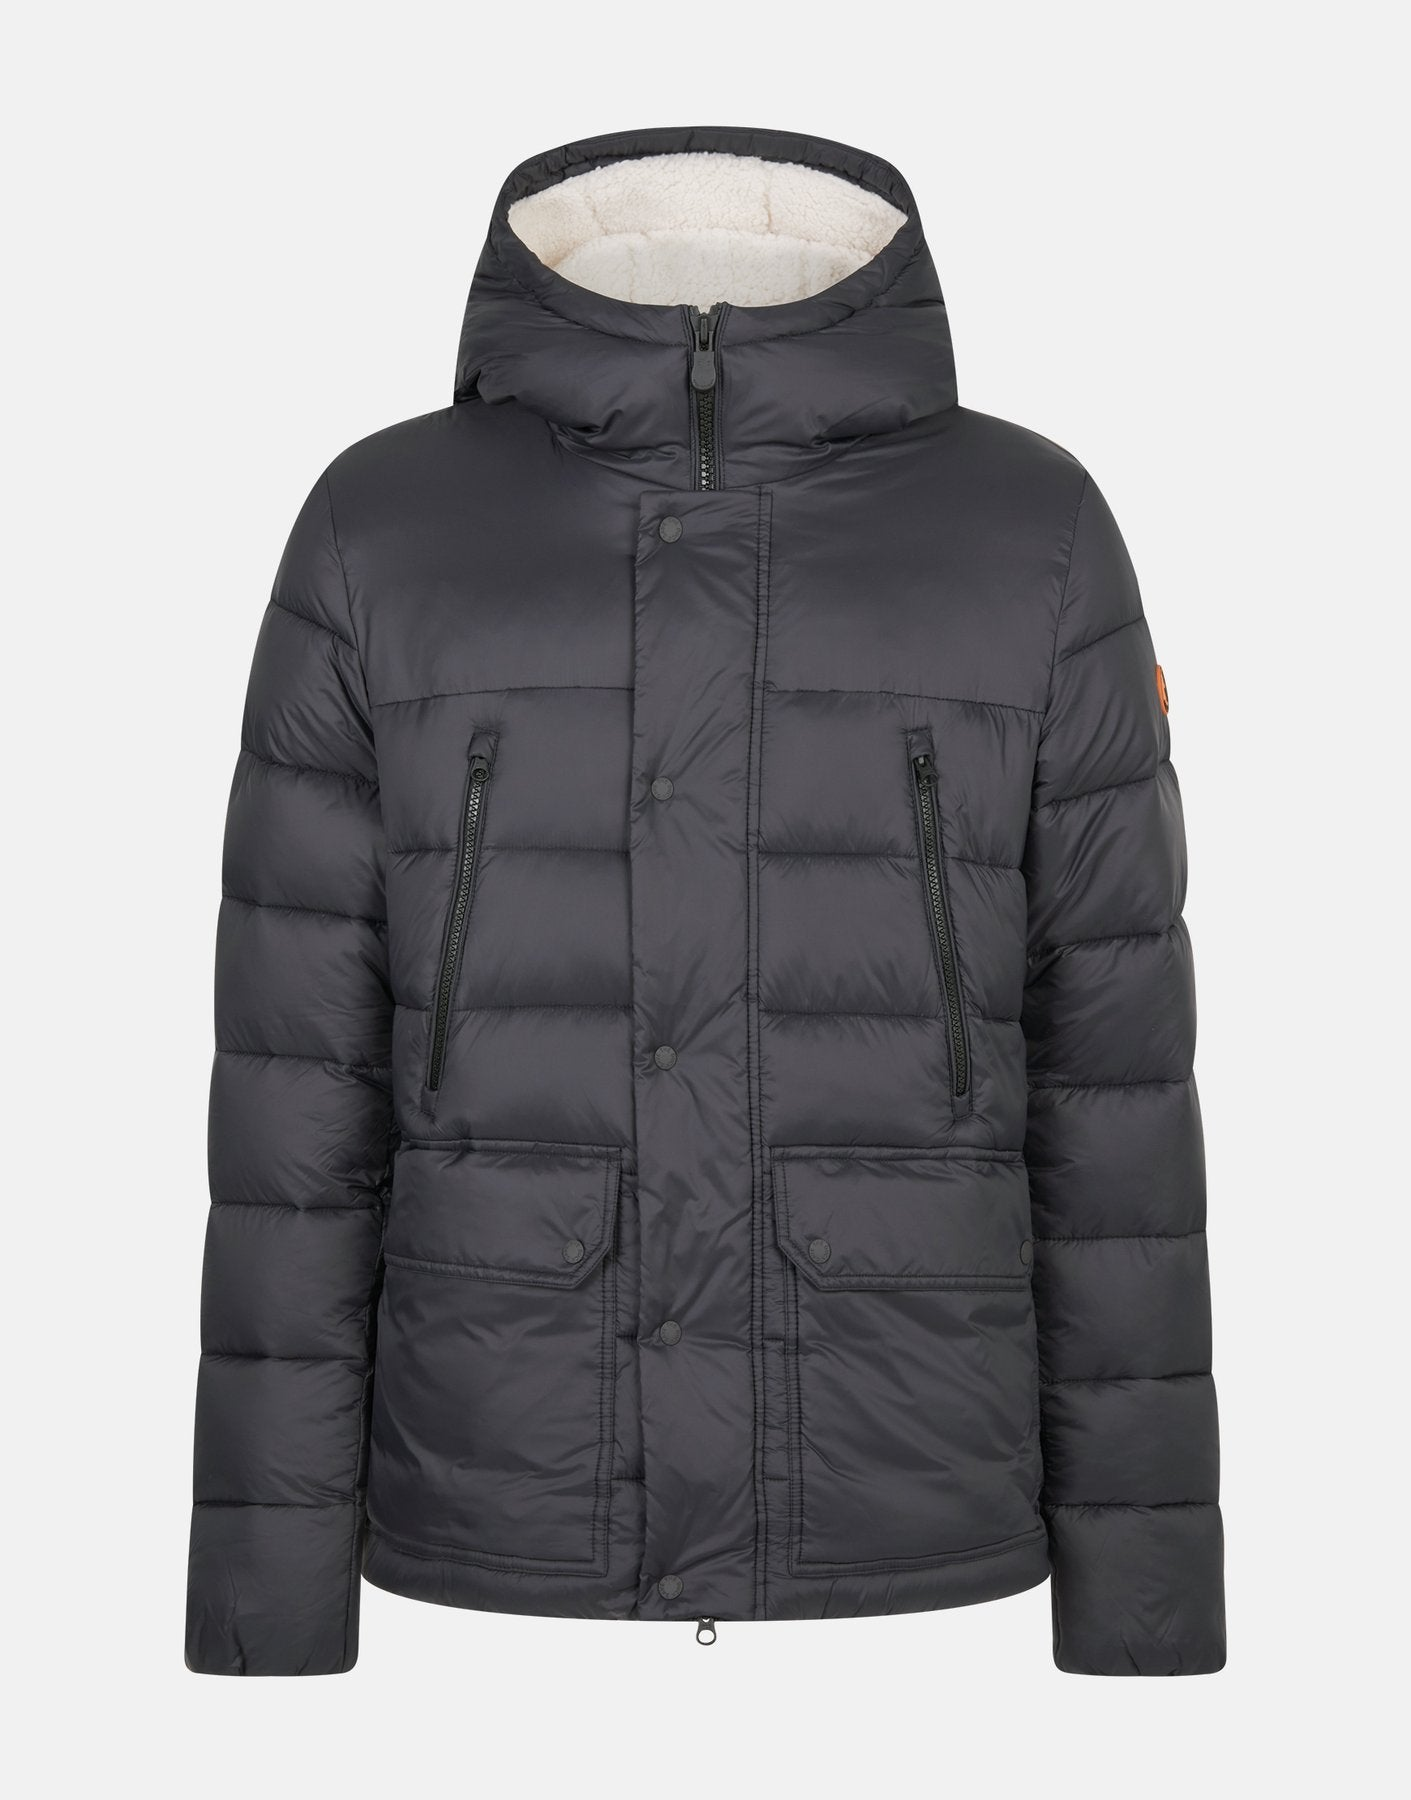 See this material featured on the Men's GIGA Winter Hooded Puffer Jacket with Faux Sherpa Lining